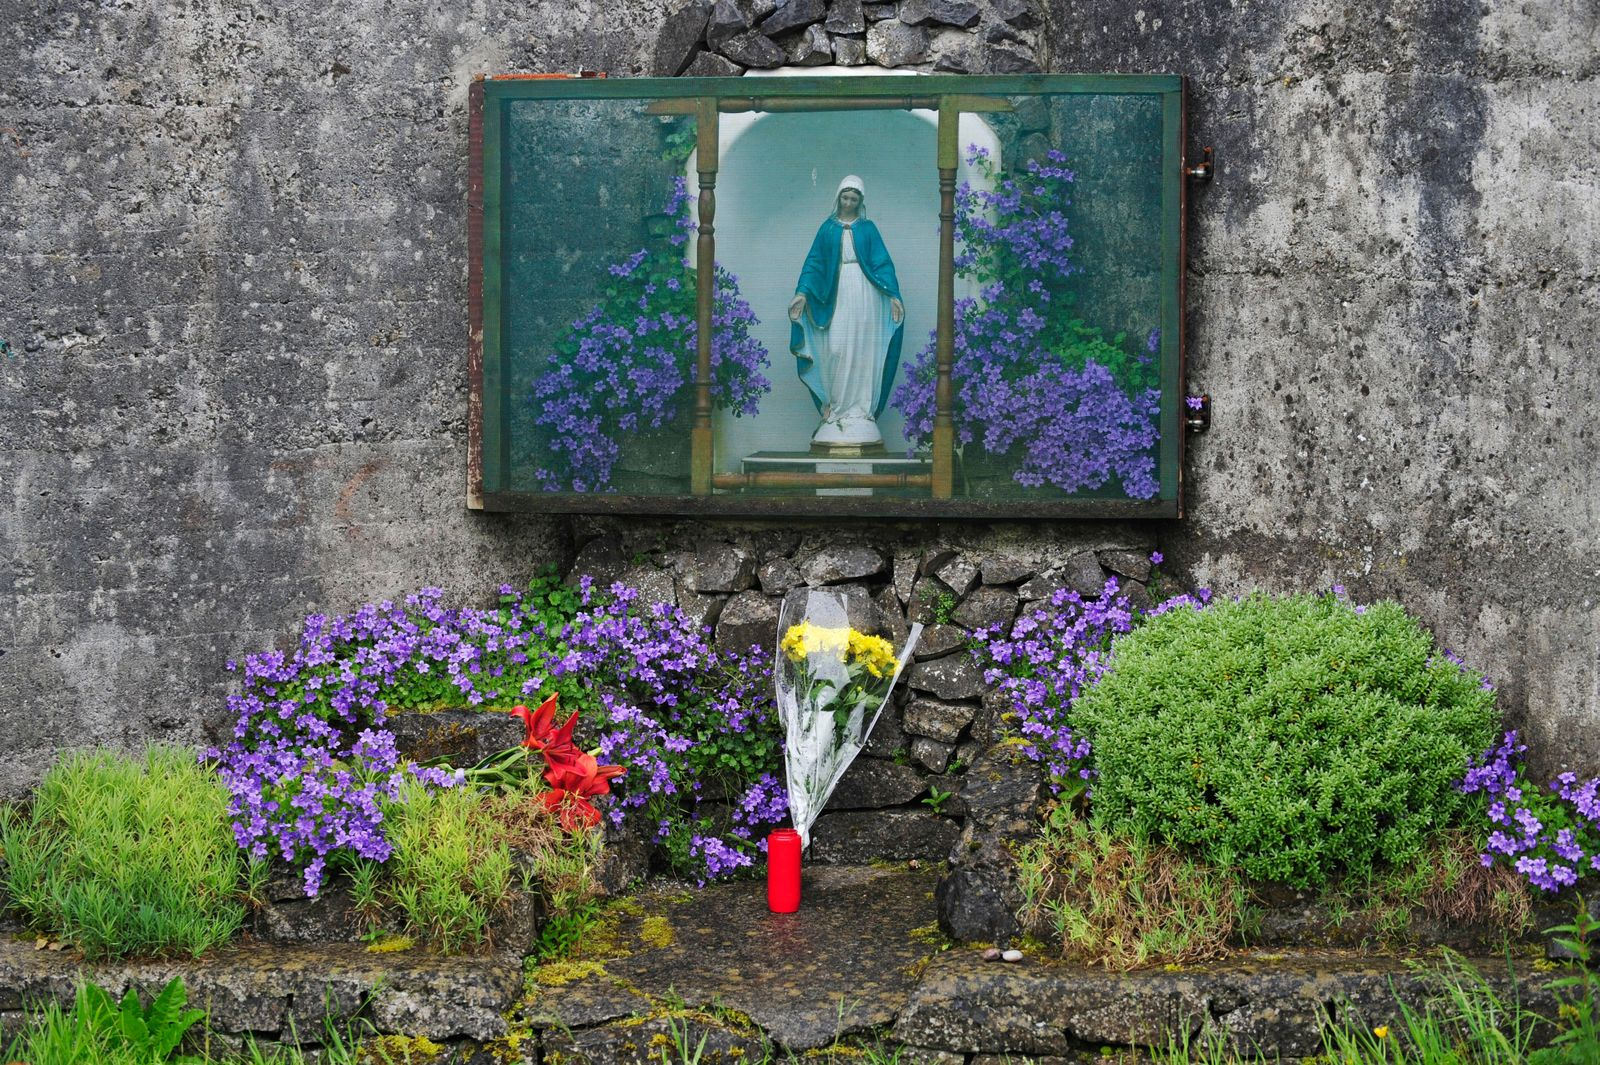 Irish government apologises following an investigation into Ireland's mother-and-baby shelters, Tuam - 06 Jun 2014